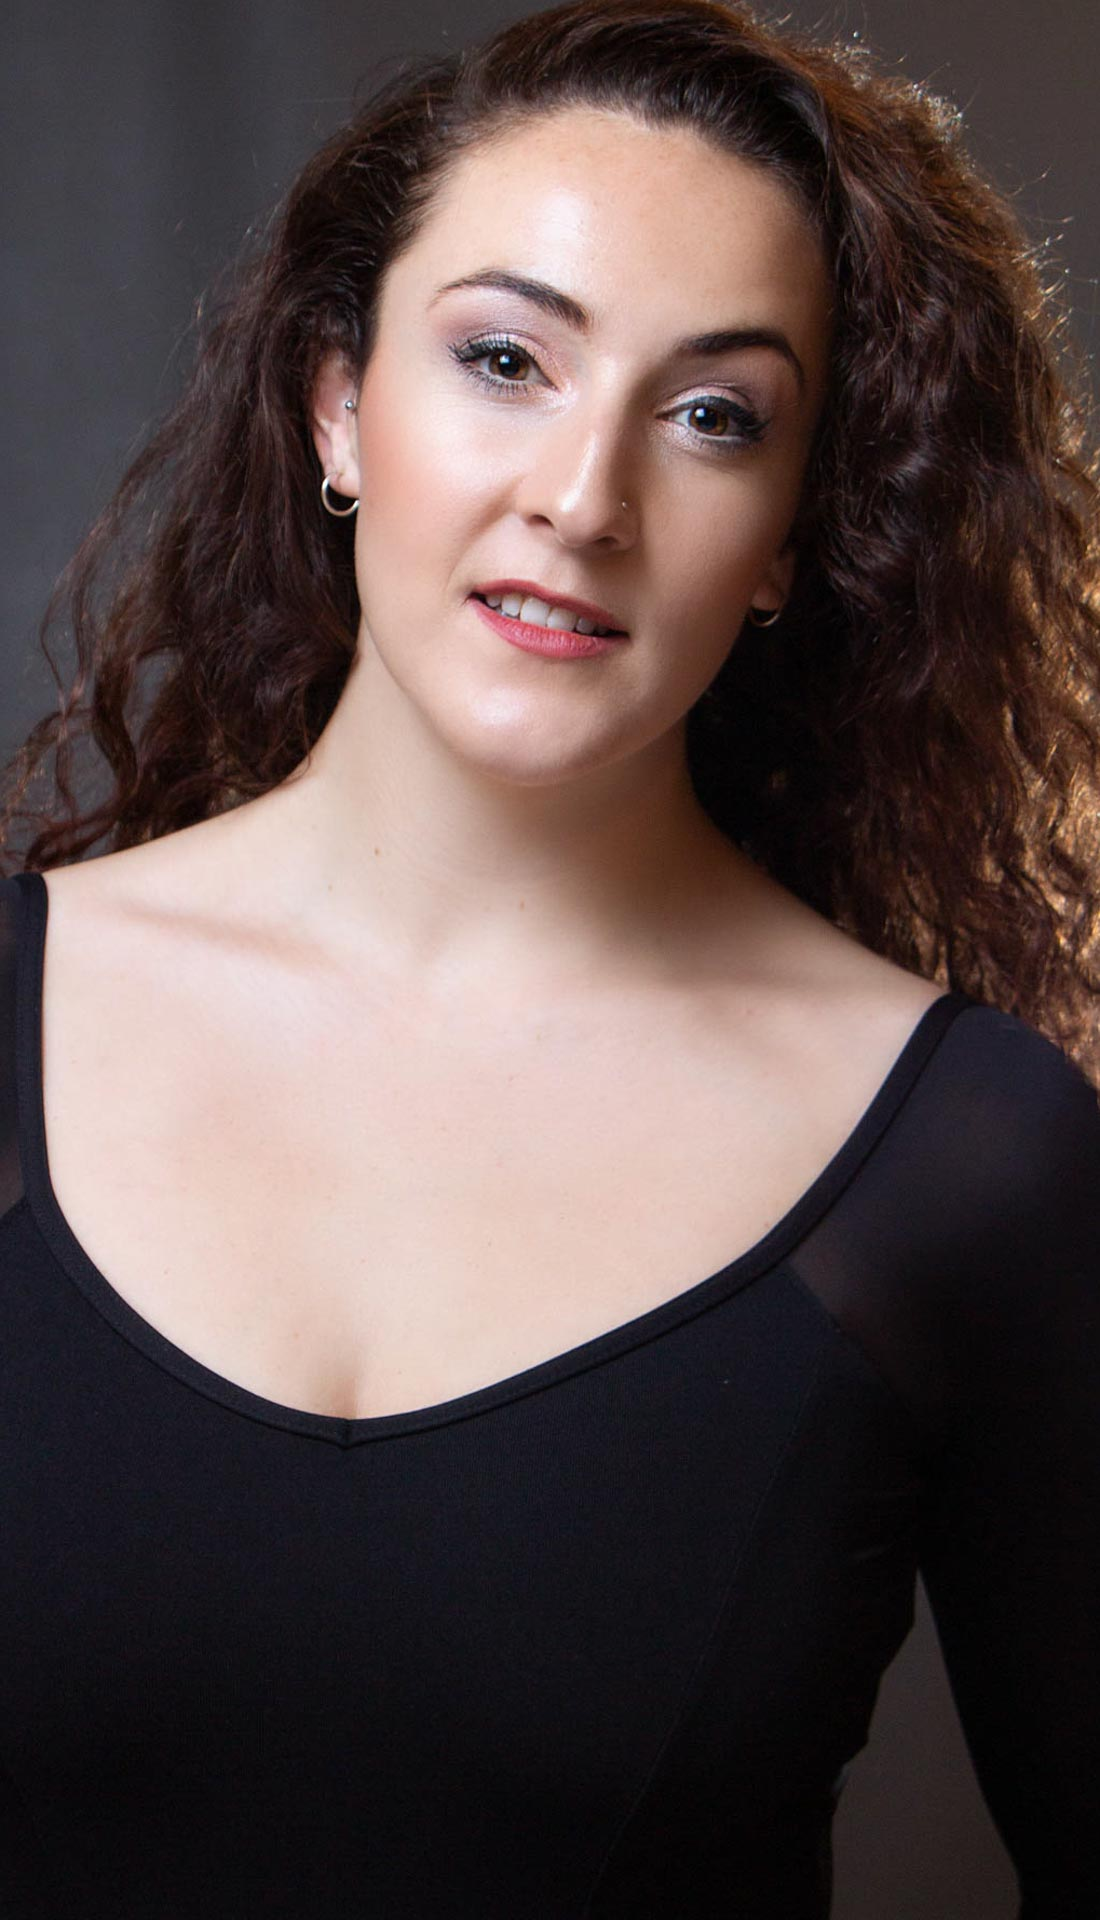 Dancers' and performers' headshots Birmingham UK. Dance portfolios and headshots West Midlands